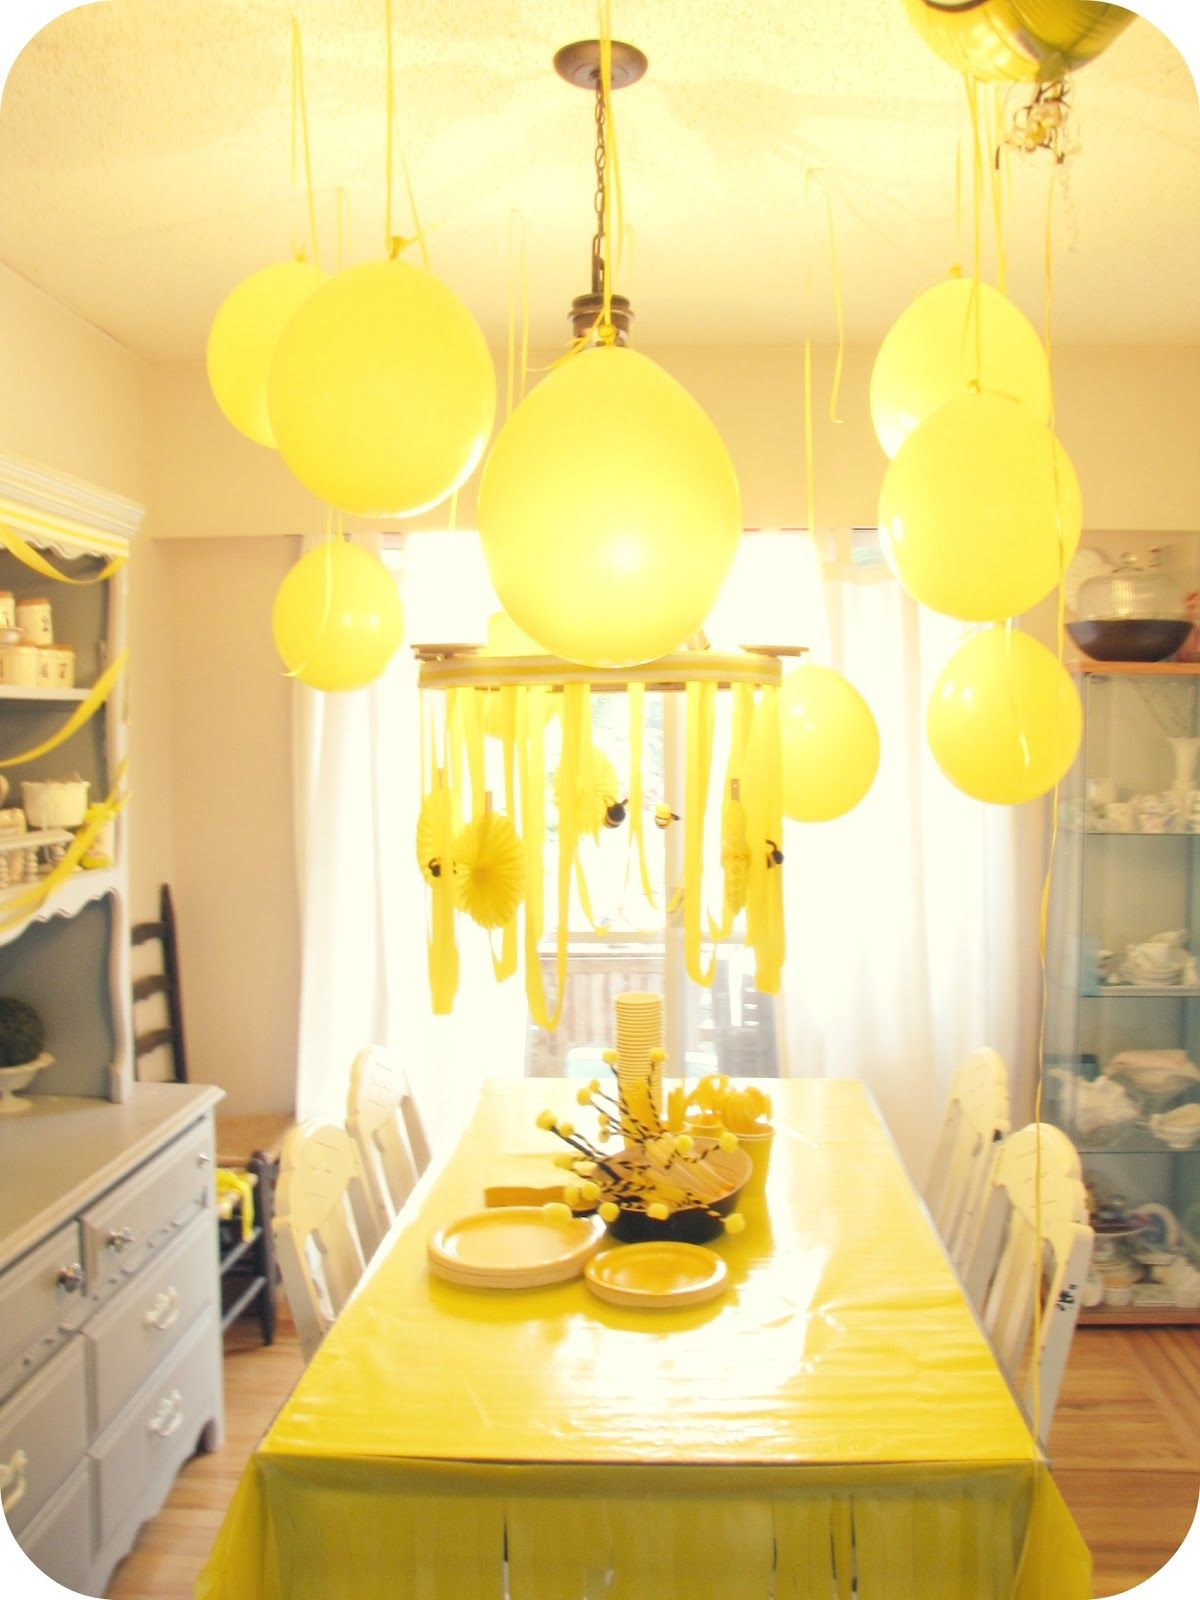 bumble bee party yellow bumble bee party decorjpg - Yellow Decor